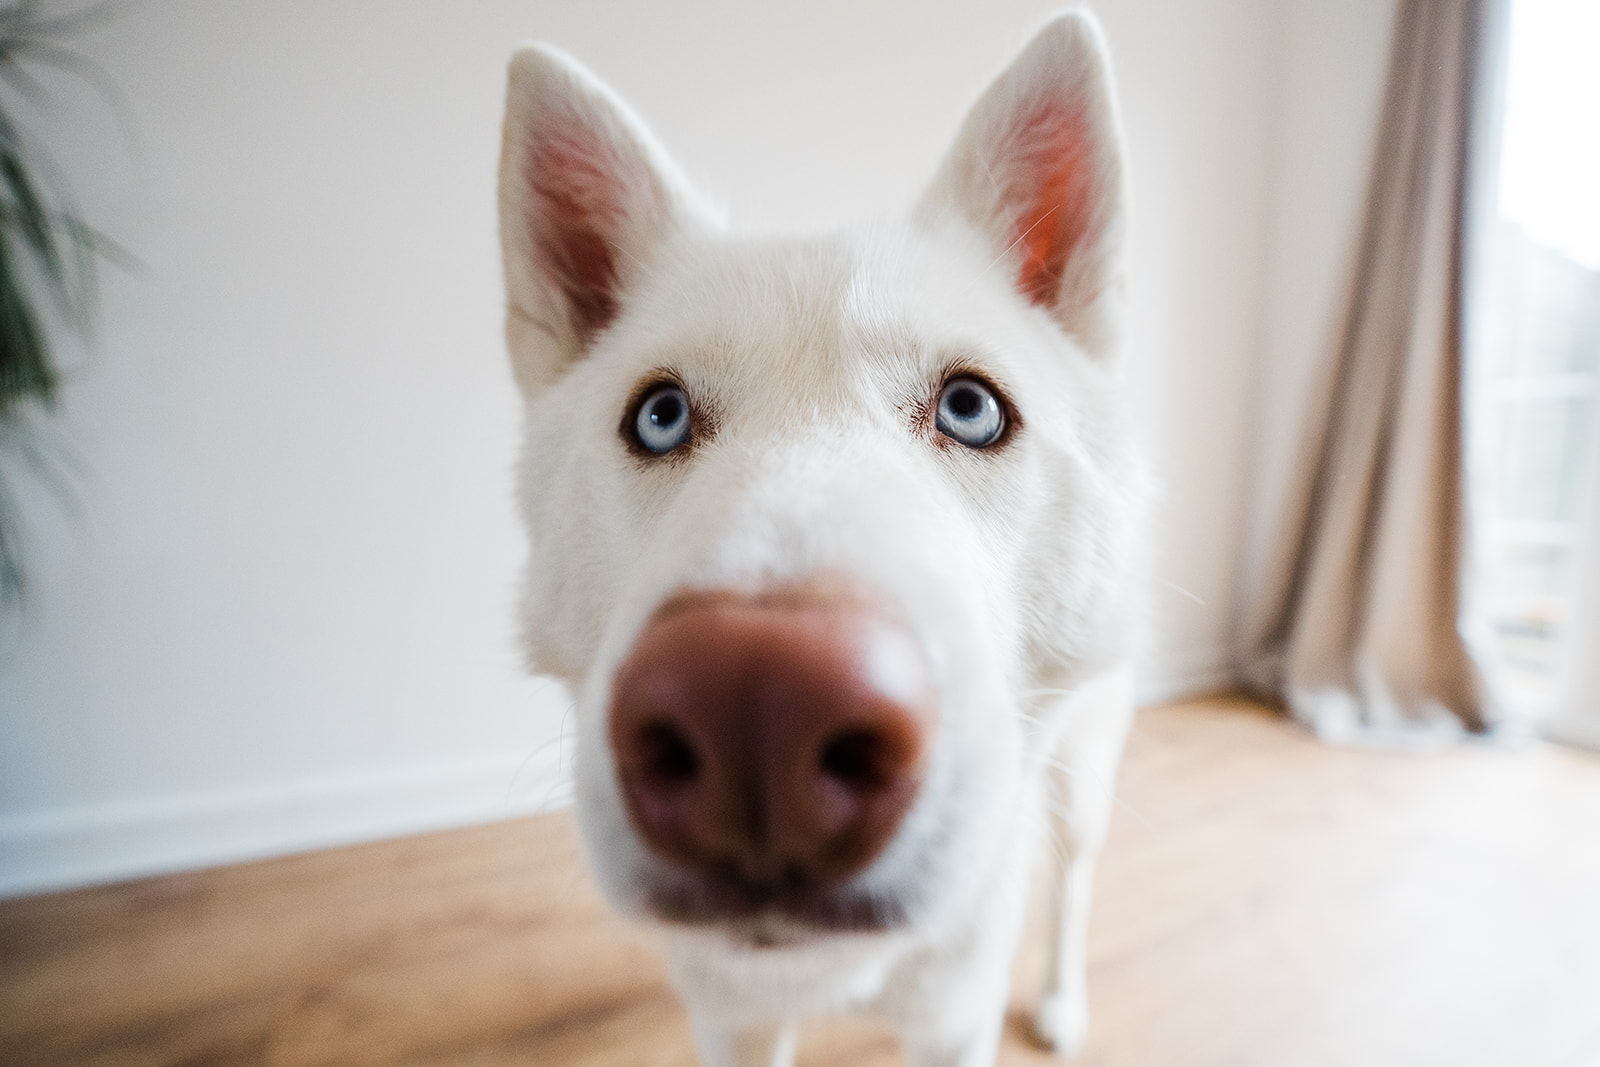 White husky looking into camera with its nose in the lens.